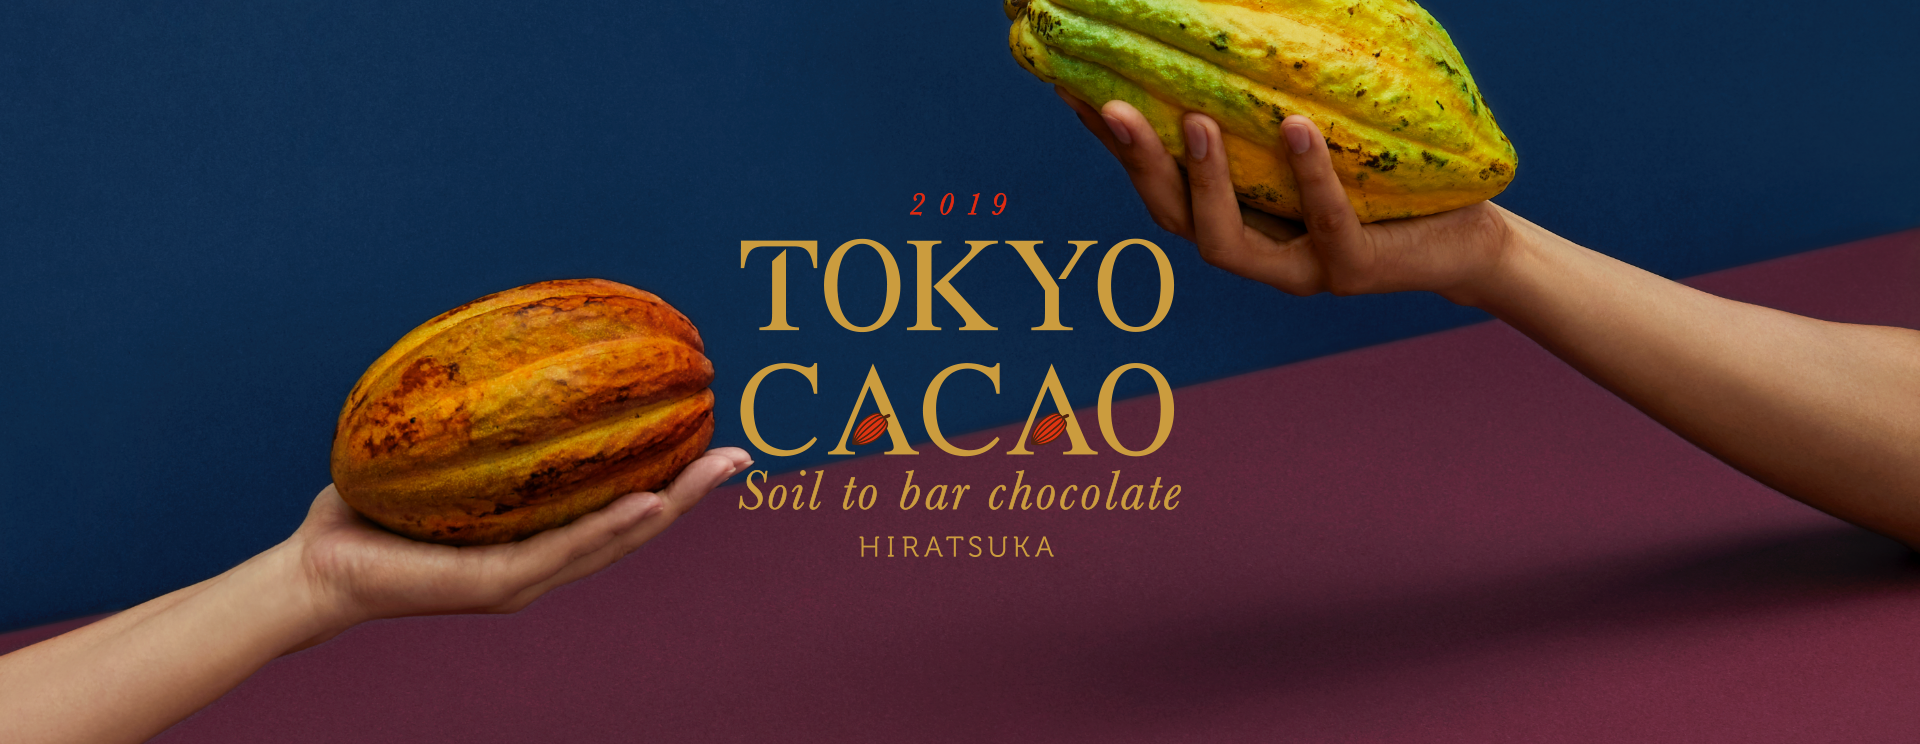 TOKYO CACAO Soil to bar chocolate